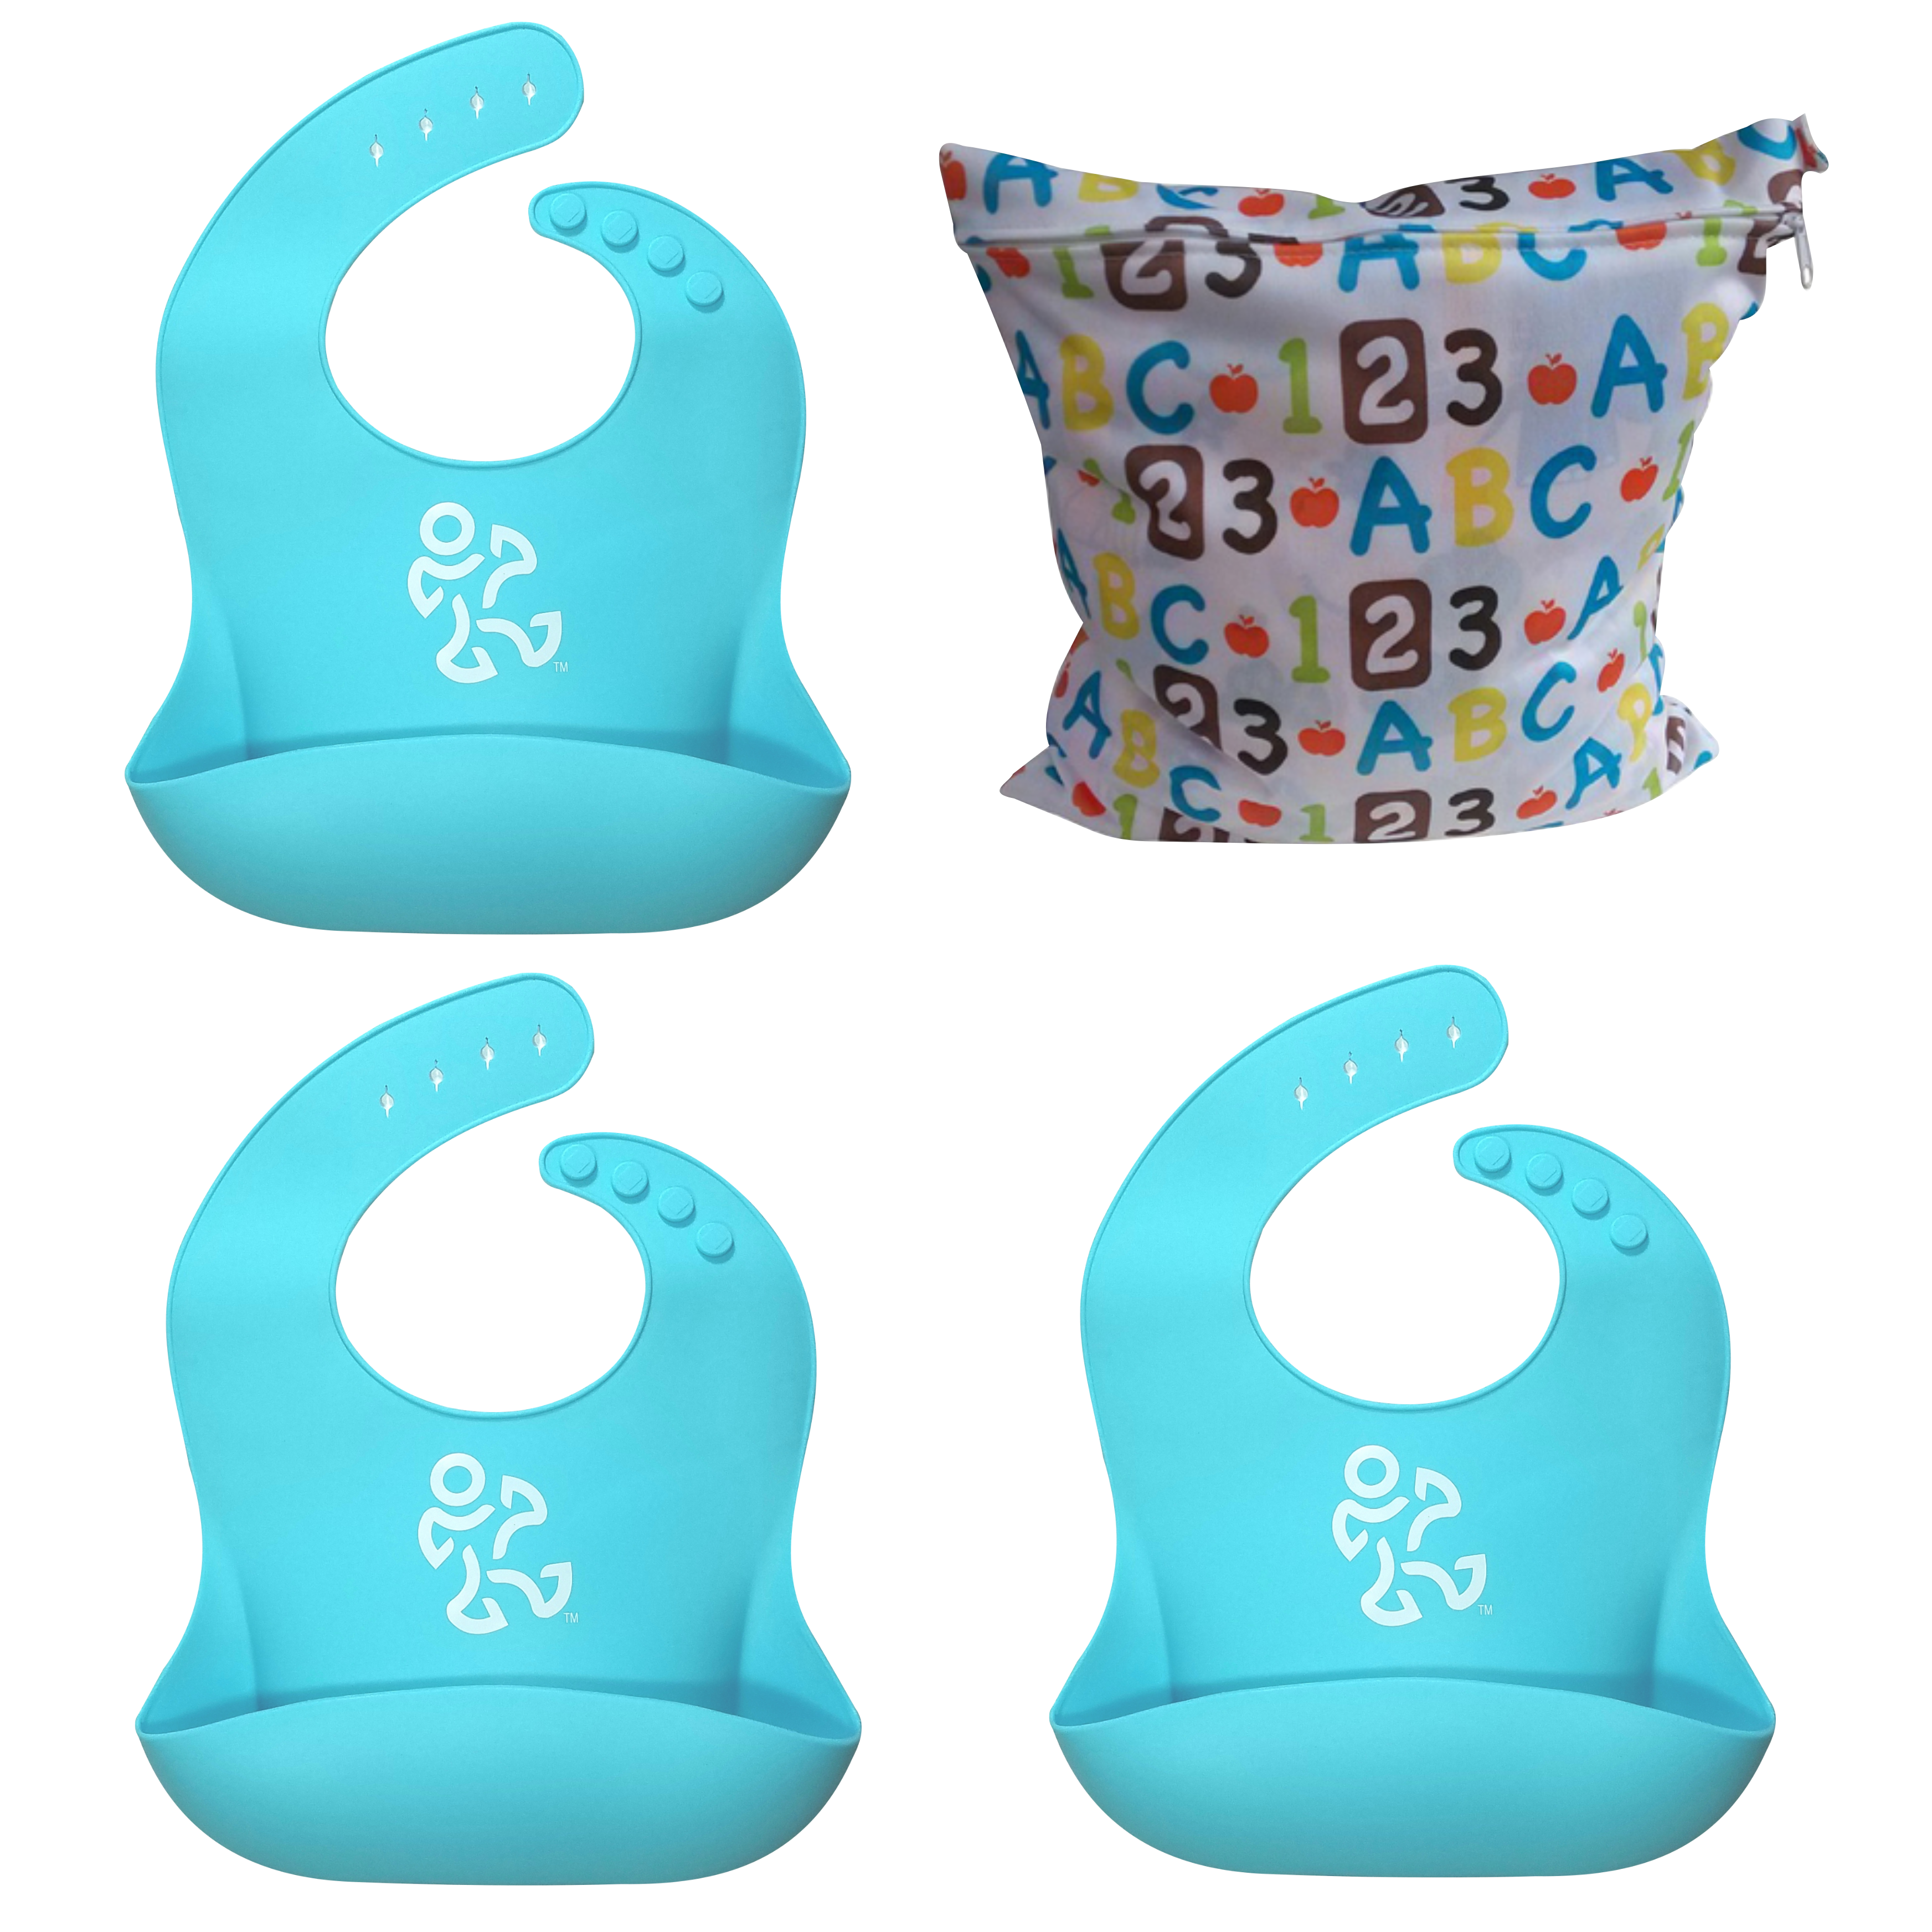 Waterproof Silicone Baby Bib Easily Wipes Clean! Big Pocket Keeps Stains Off! Pack of 3 Bibs and Wet/Dry Snack Bag